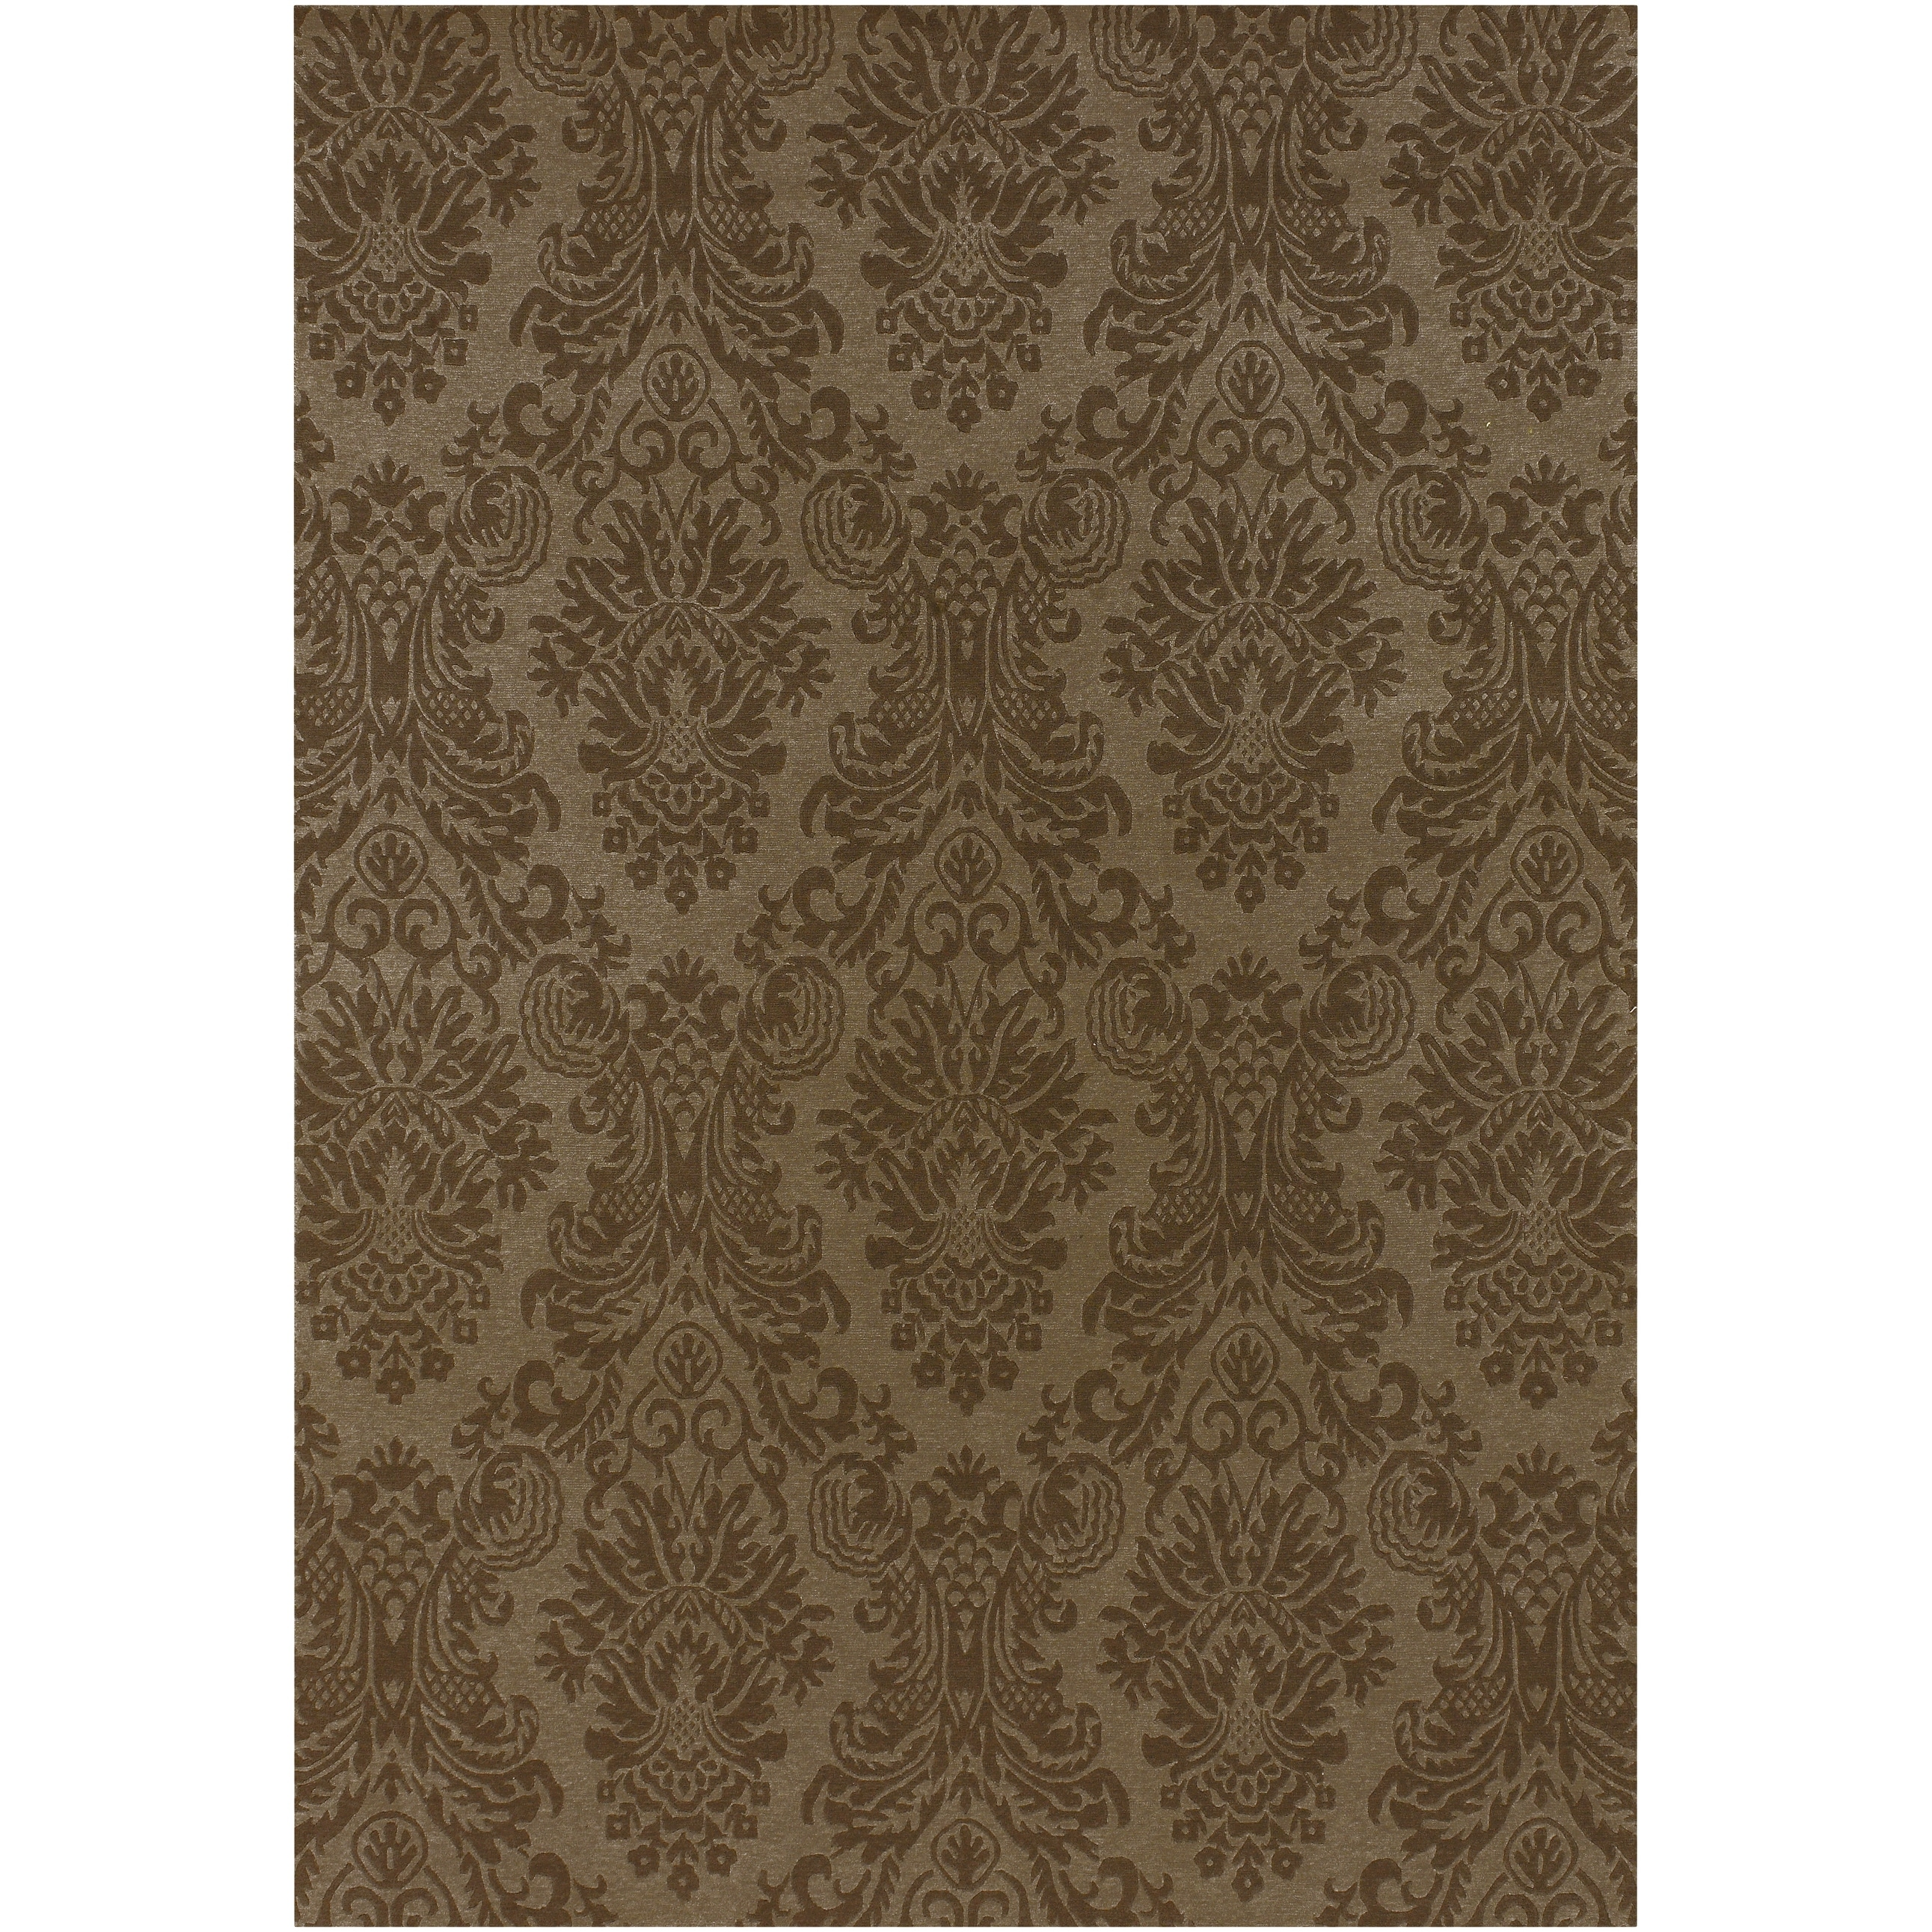 Hand-knotted Wheeler Wool Area Rug - 9' x 13'